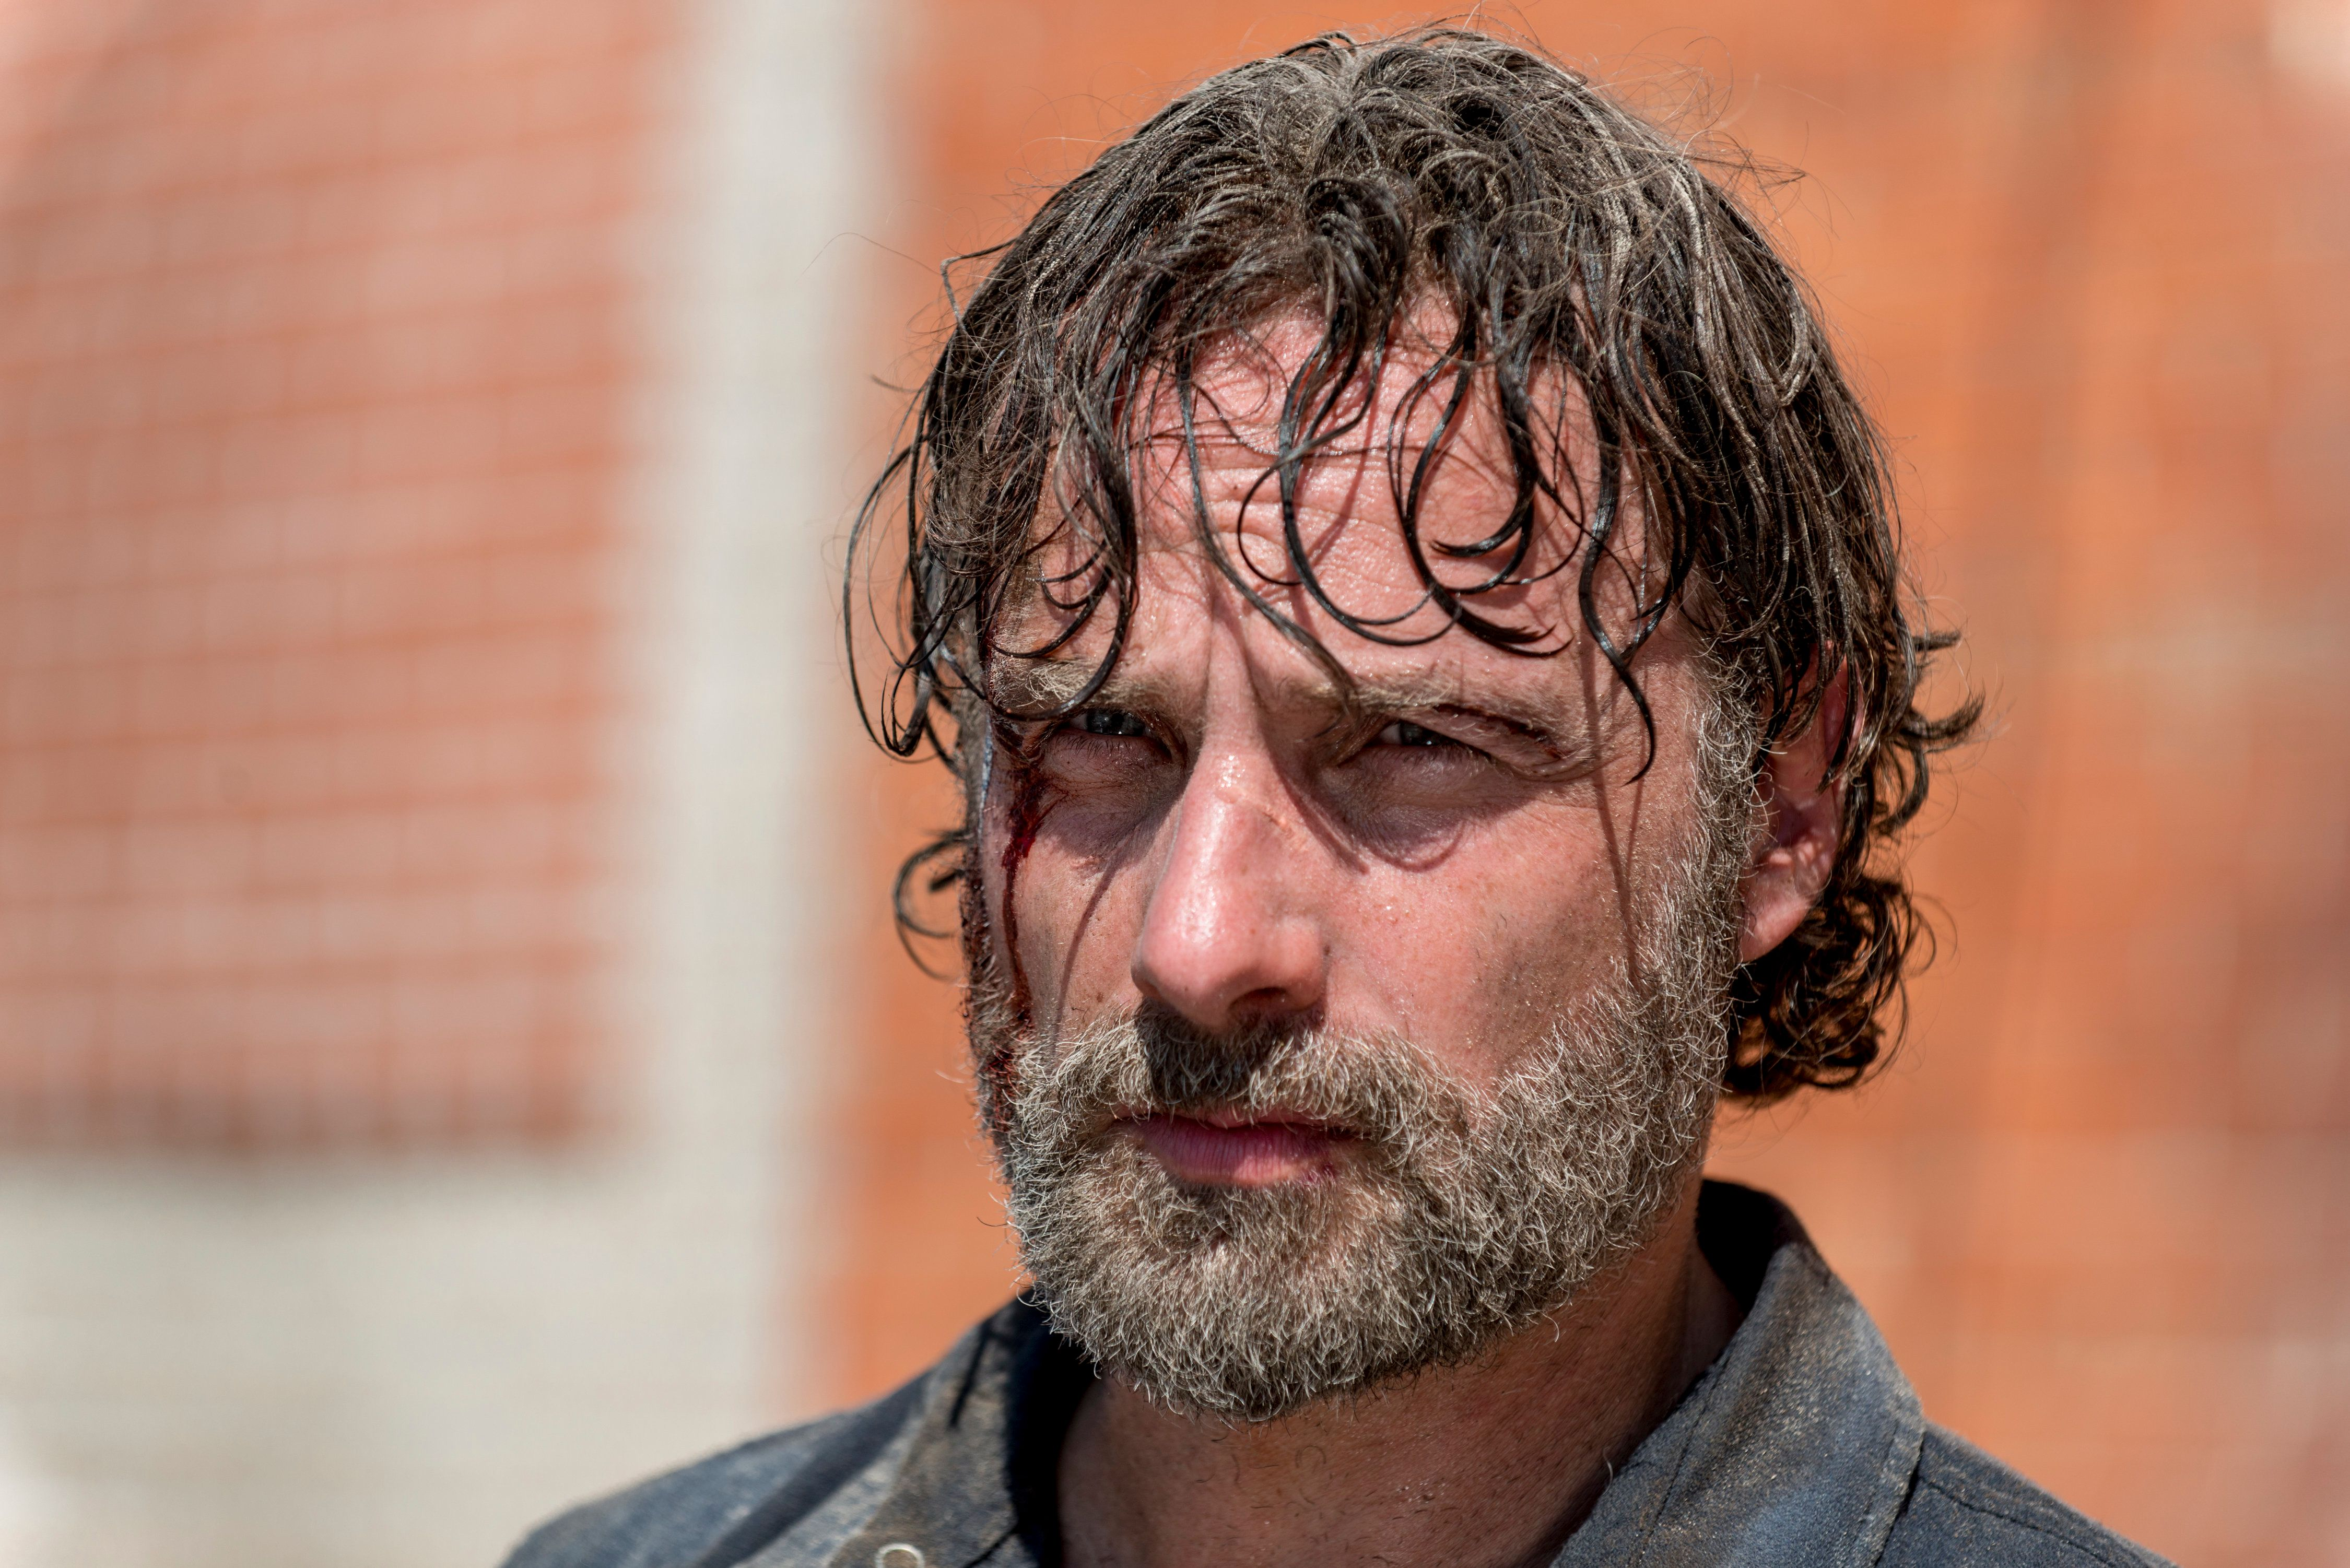 Rick Grimes with his resting Rick face.